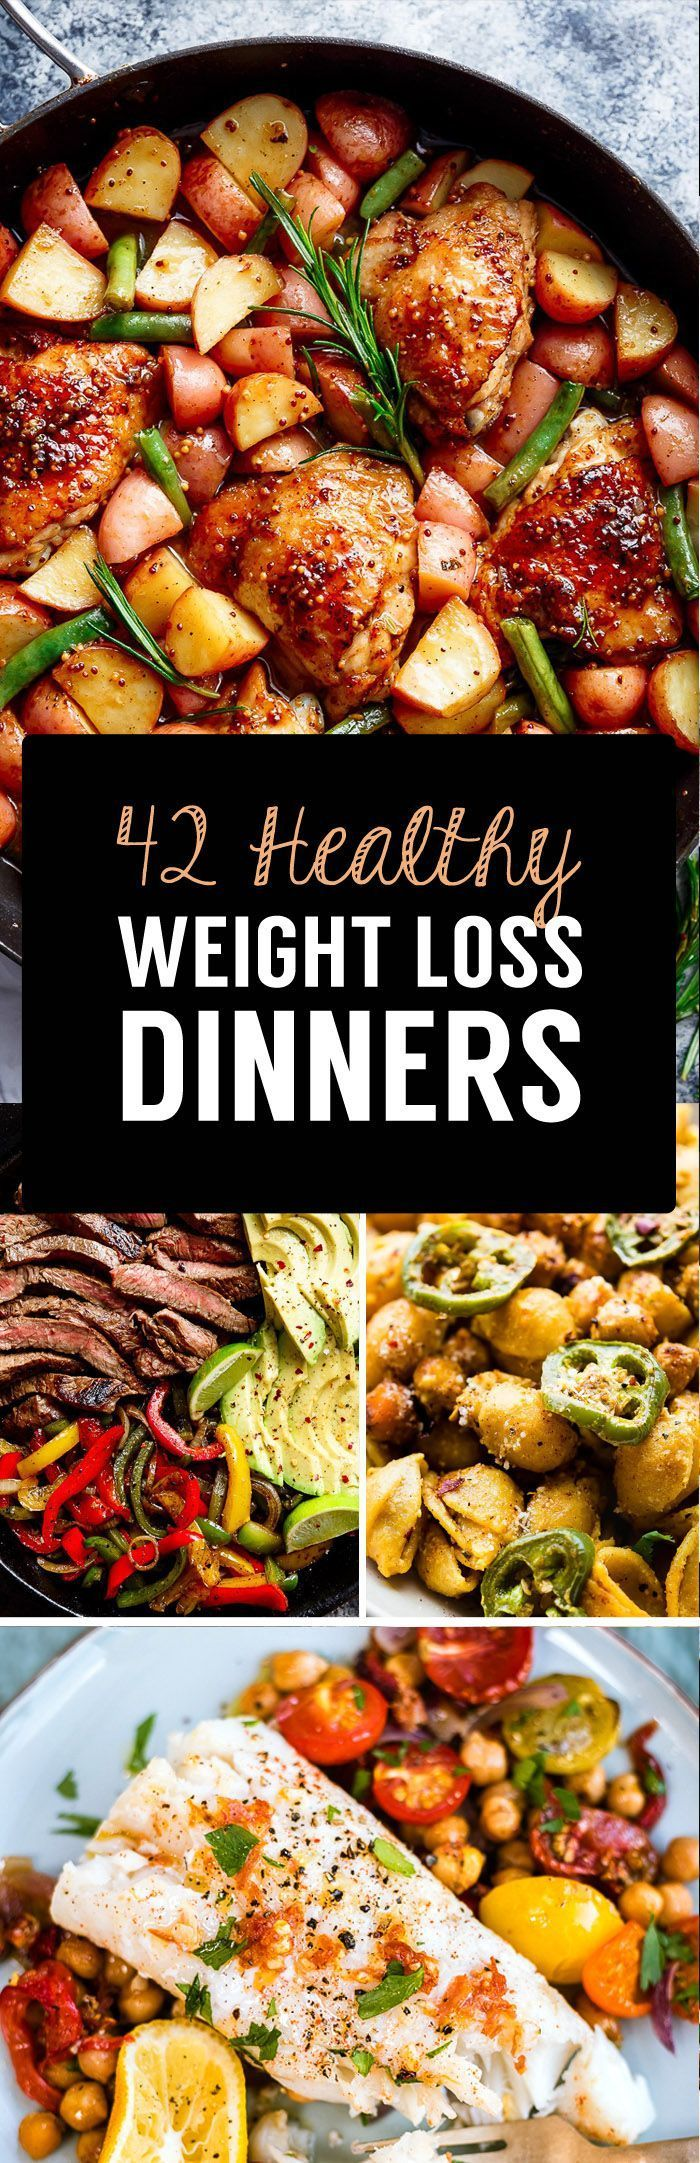 42 Weight Loss Dinner Recipes That Will Help You Shrink Belly Fat …